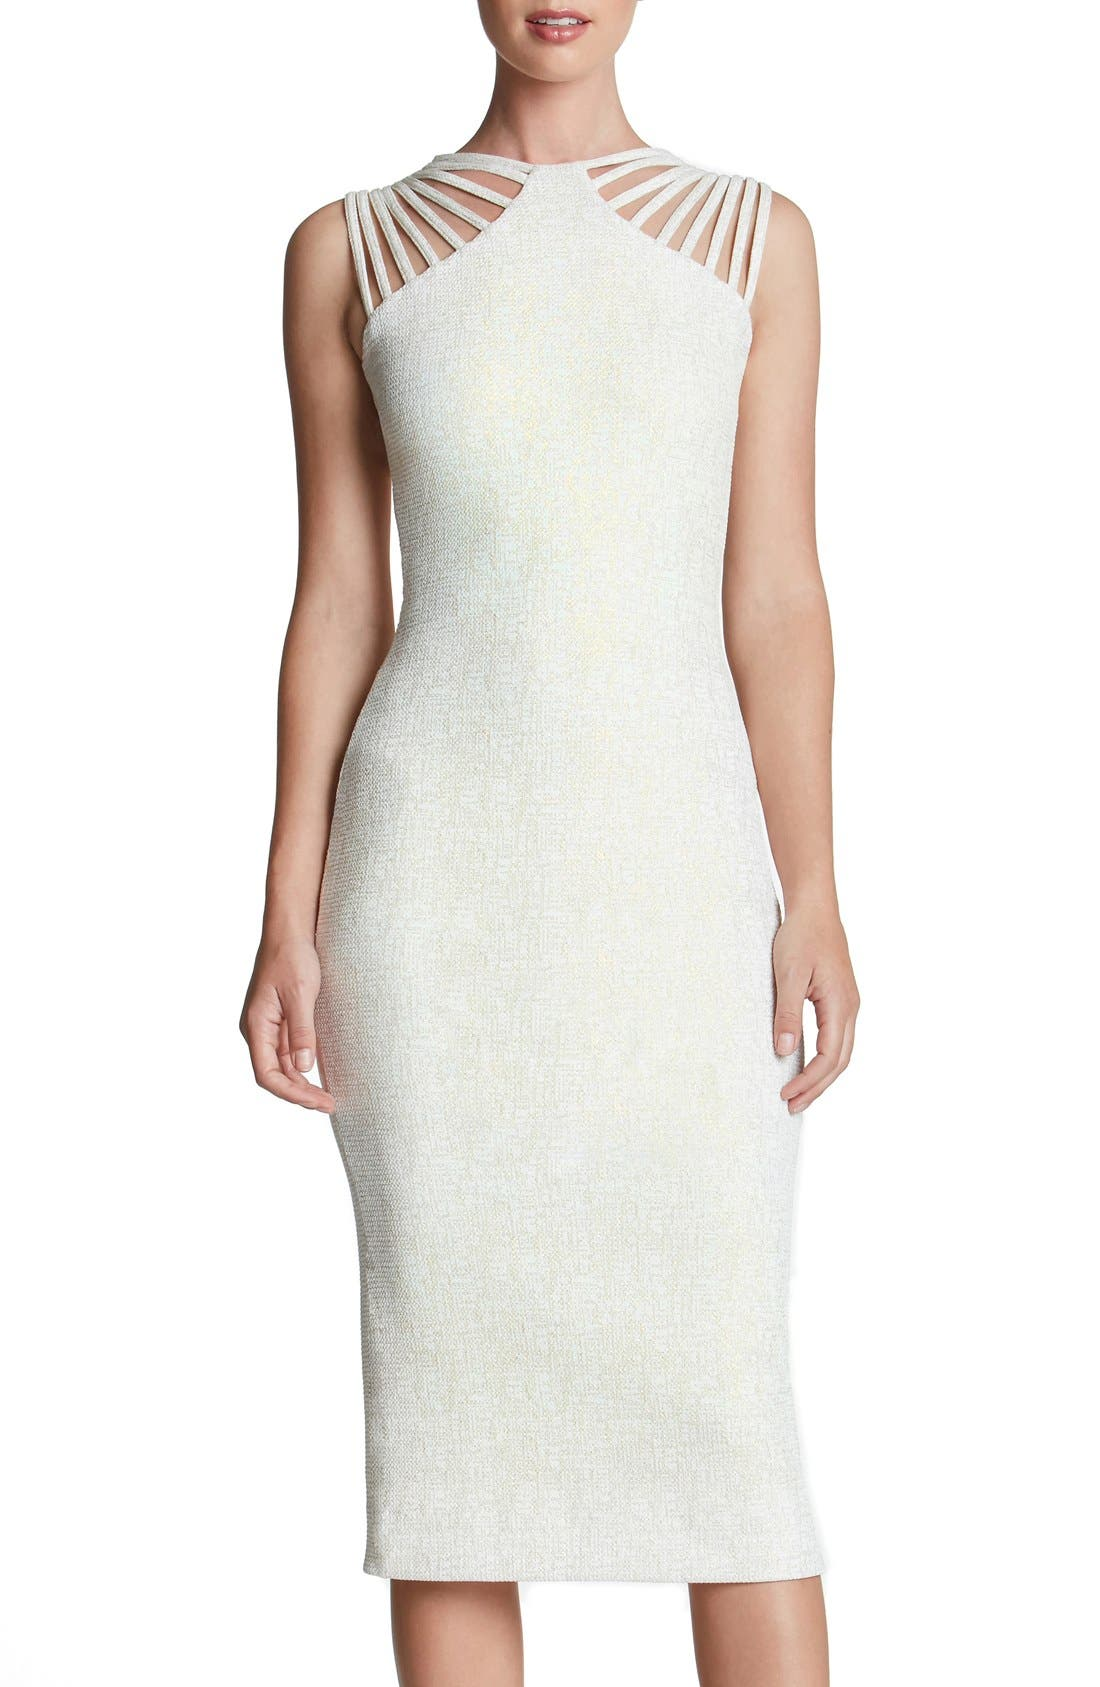 DRESS THE POPULATION 'Gwen' Foiled Knit Midi Dress